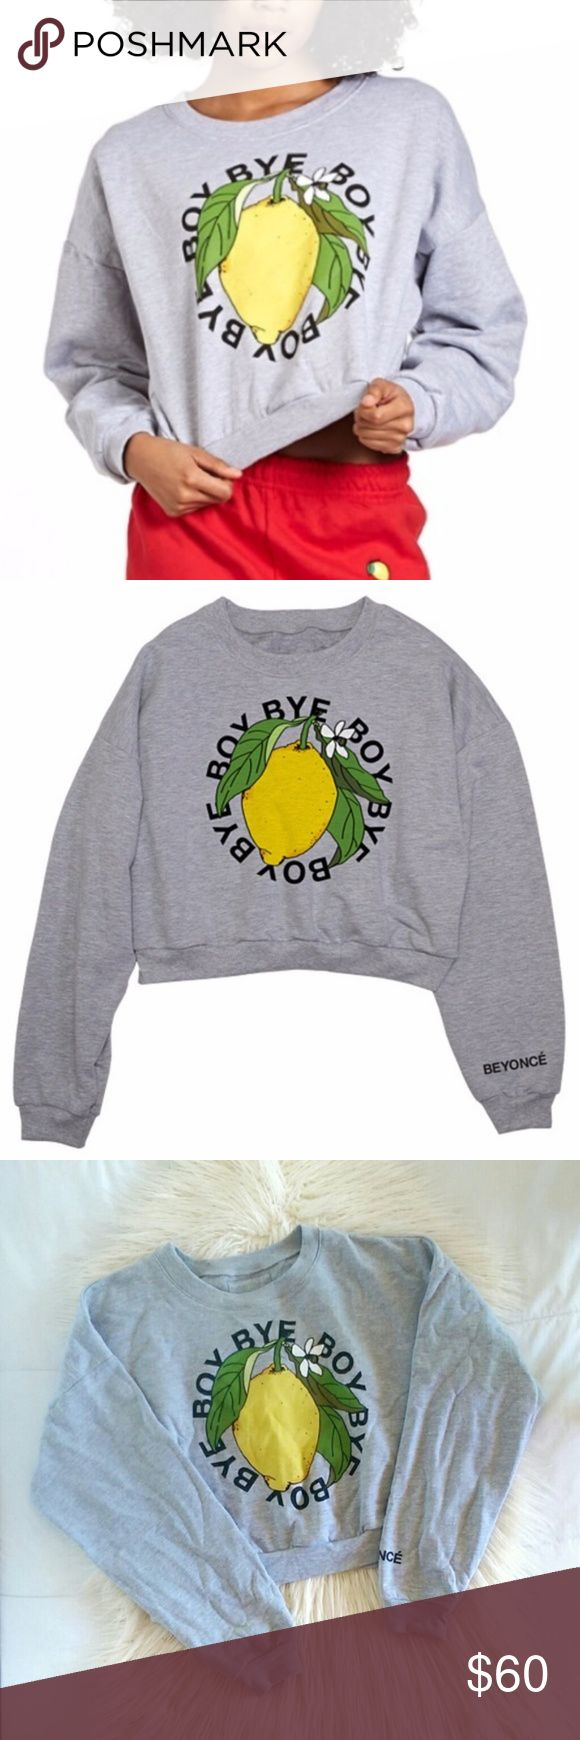 "Beyonce Lemonade Boy Bye Cropped Graphic Pullover Beyonce Lemonade Boy Bye Cropped Graphic Pullover. The perfect sweater for coachella! Lemonade line by Beyonce merchandise, ""Boy Bye"" print with lemon graphic pullover. Super soft, 100% cotton. One size, look to measurements for fit. Bust measures 24', length is 19'. Can fit small to large depending on fit preference.   Excellent condition.  Open to offers. No trades. No modeling. Beyonce Sweaters"